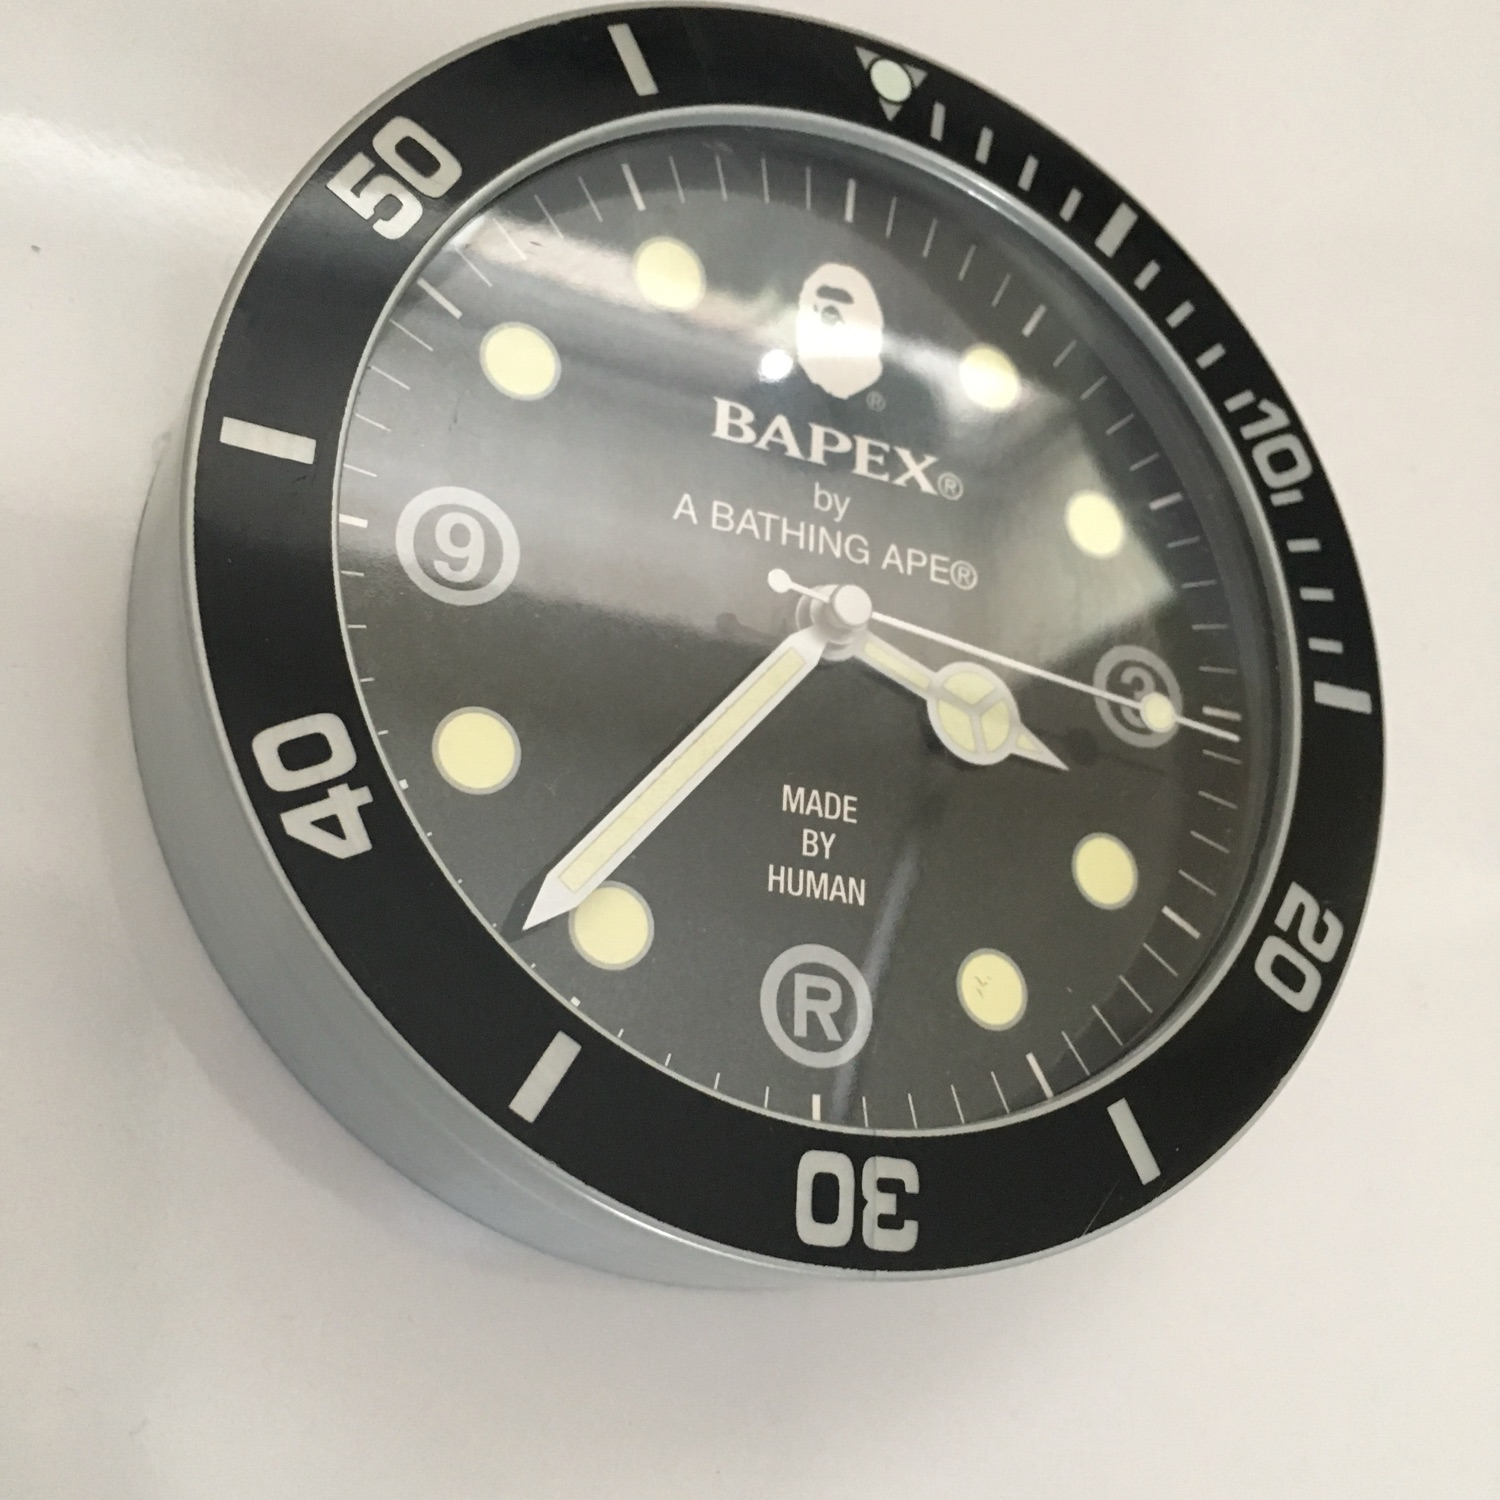 Bapex Bape X Rolex Desk Clock Authenticated Offer